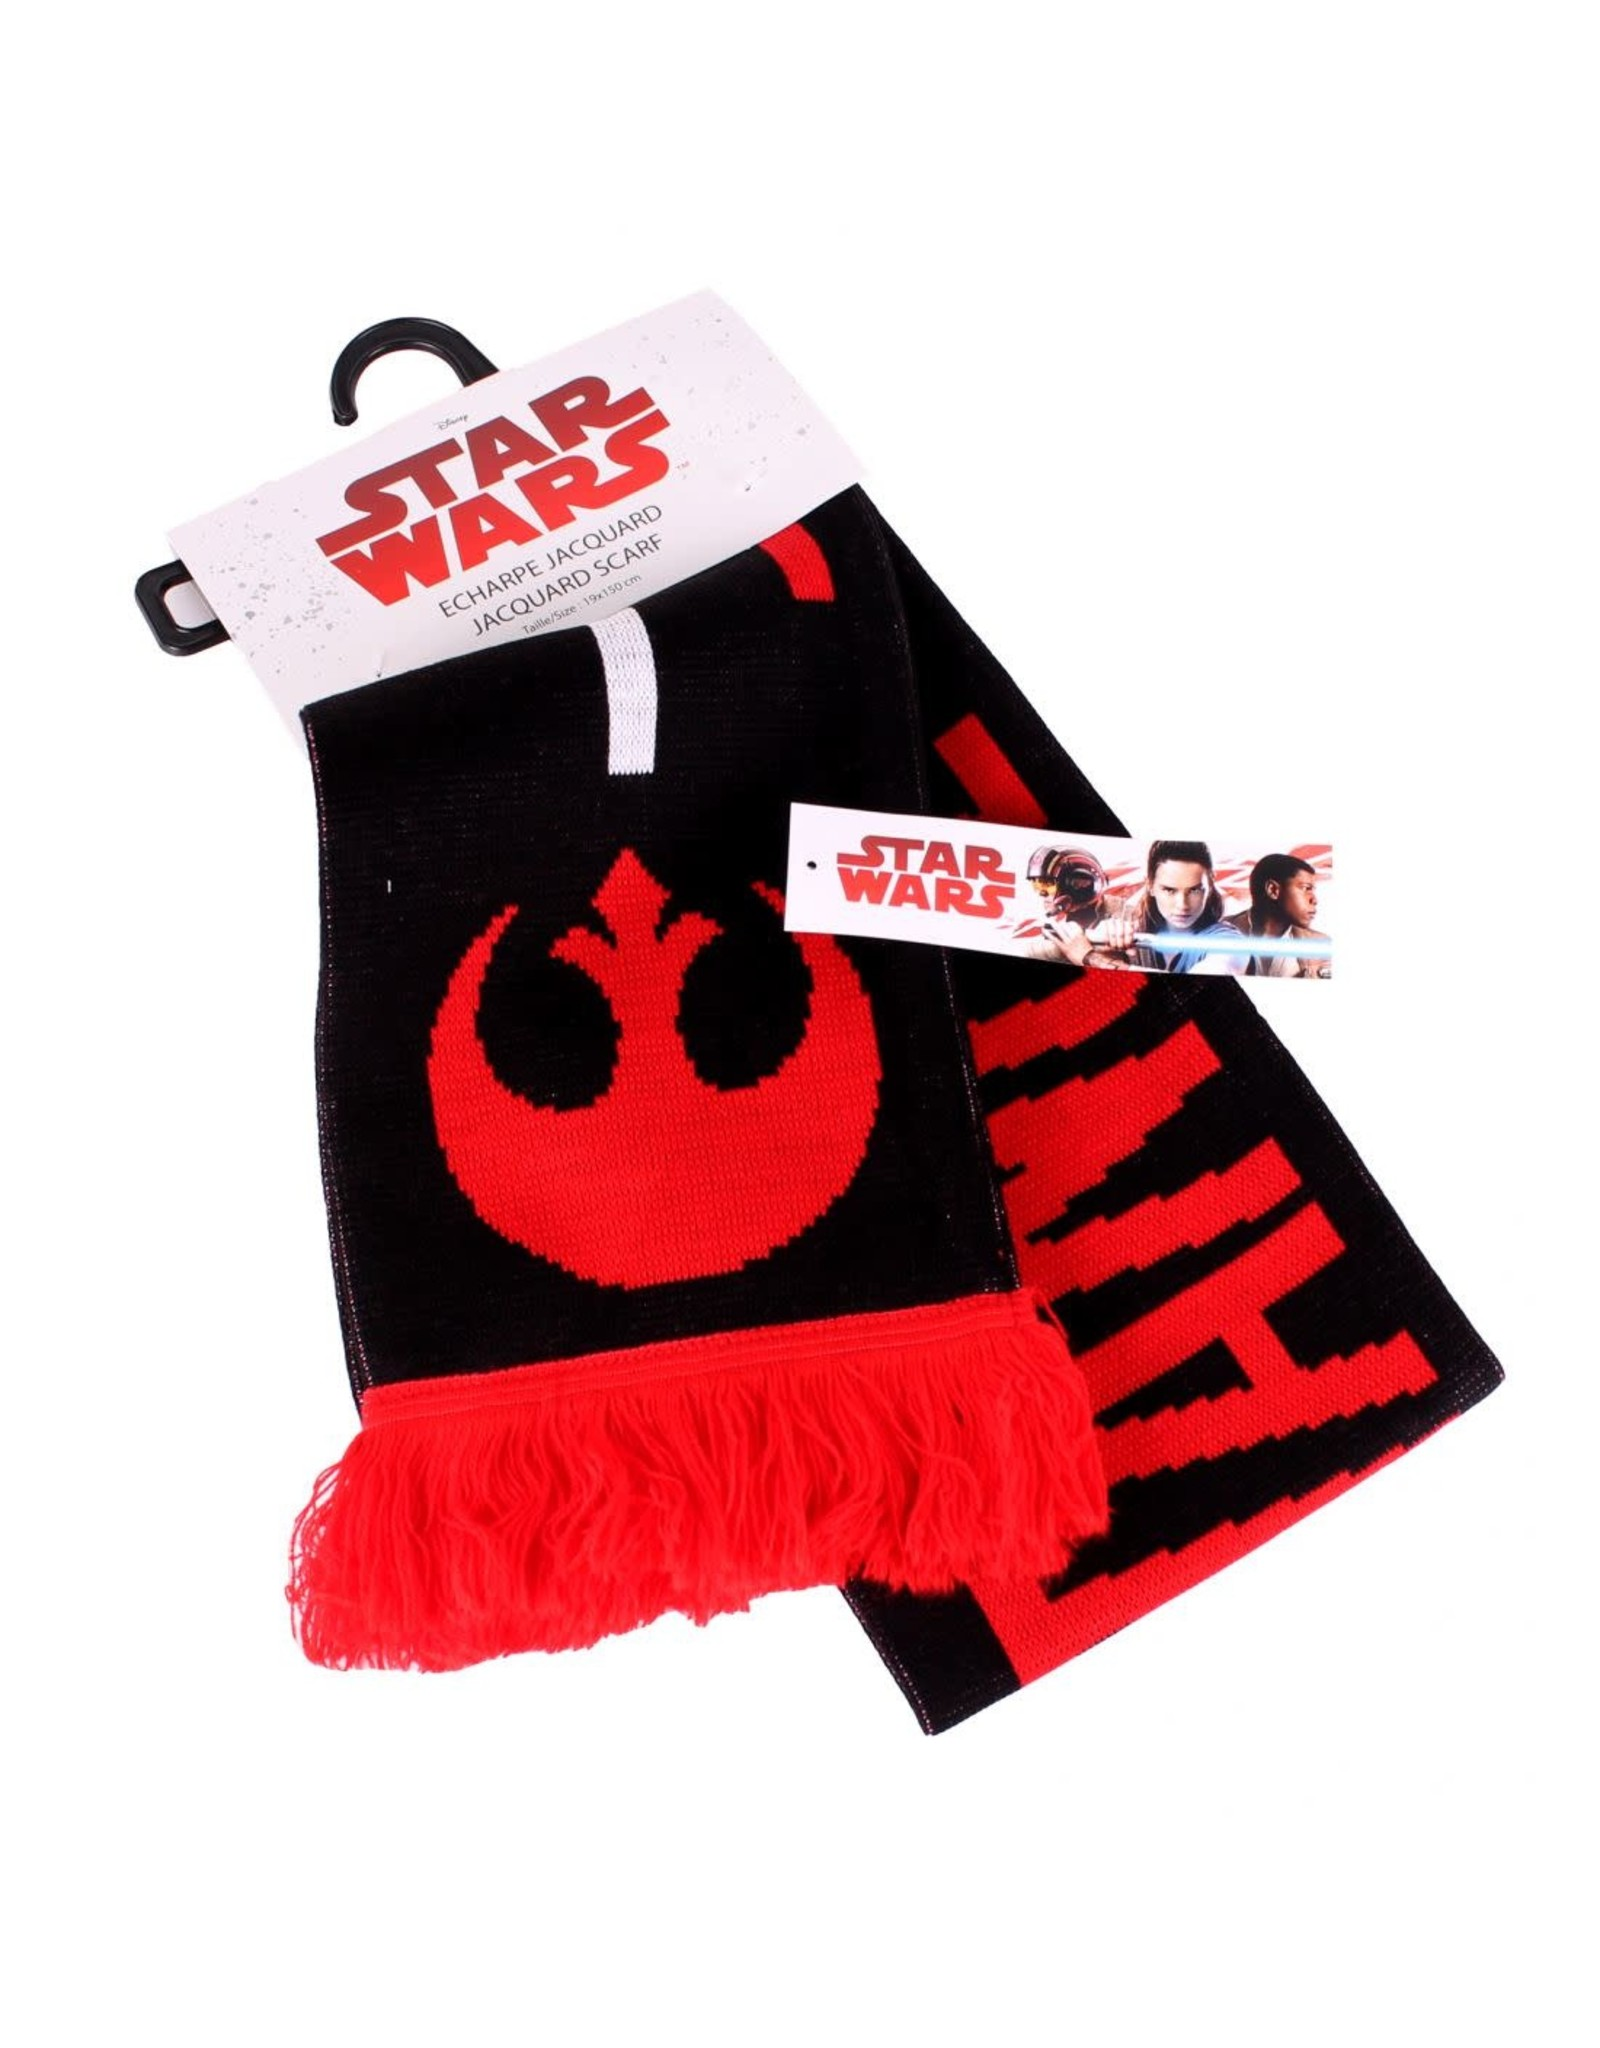 STAR WARS - Scarf - The Resistance